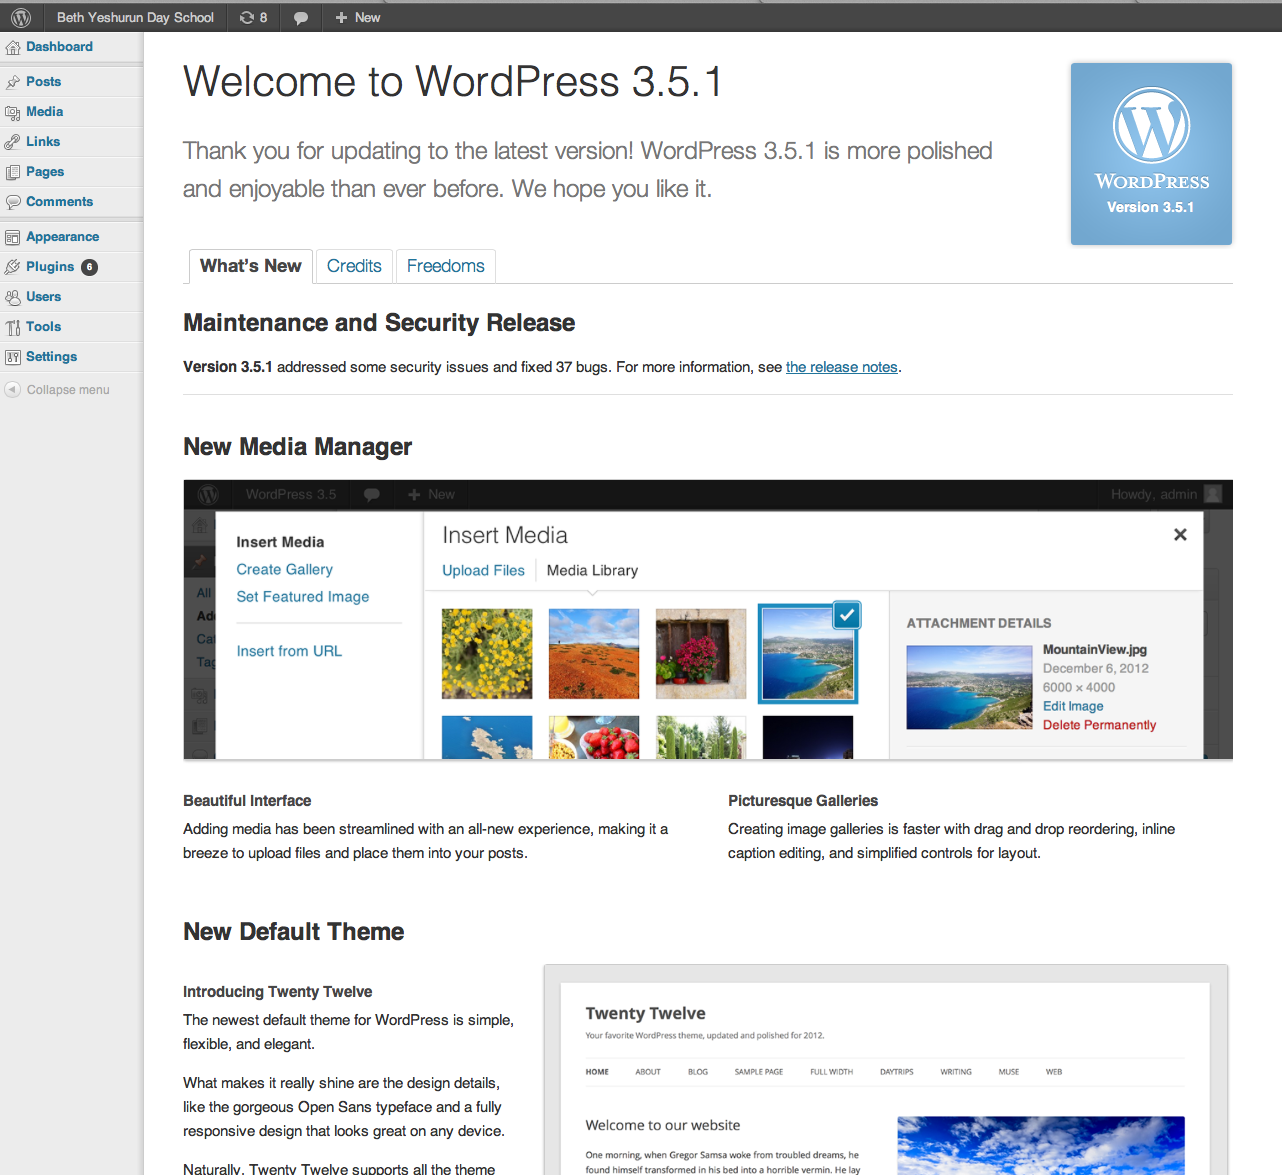 WordPress 3.5.1 updates are cool!